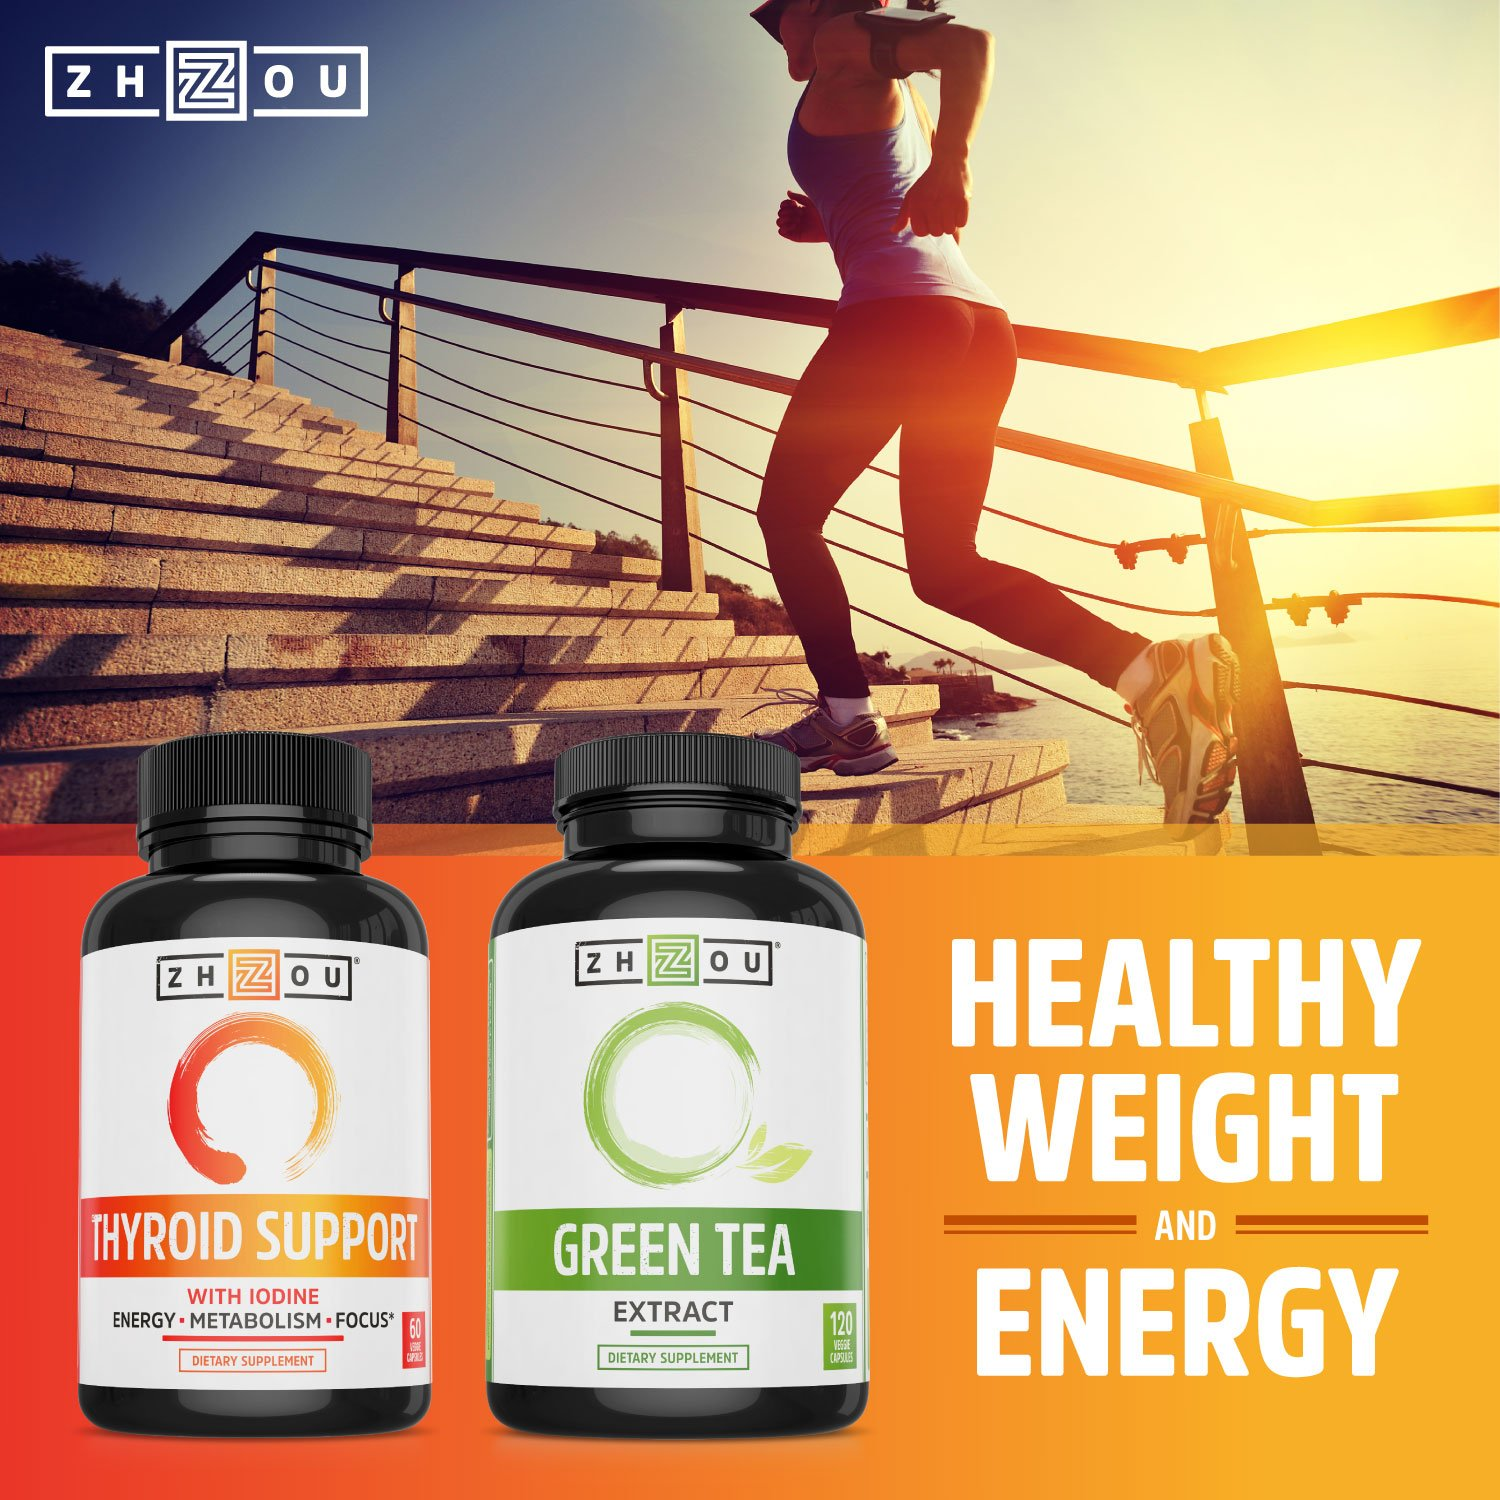 Thyroid Support Complex with Iodine - Energy, Metabolism & Focus Formula - Vegetarian, Soy & Gluten Free - 'Feel Like Your Old Self Again' by Zhou Nutrition